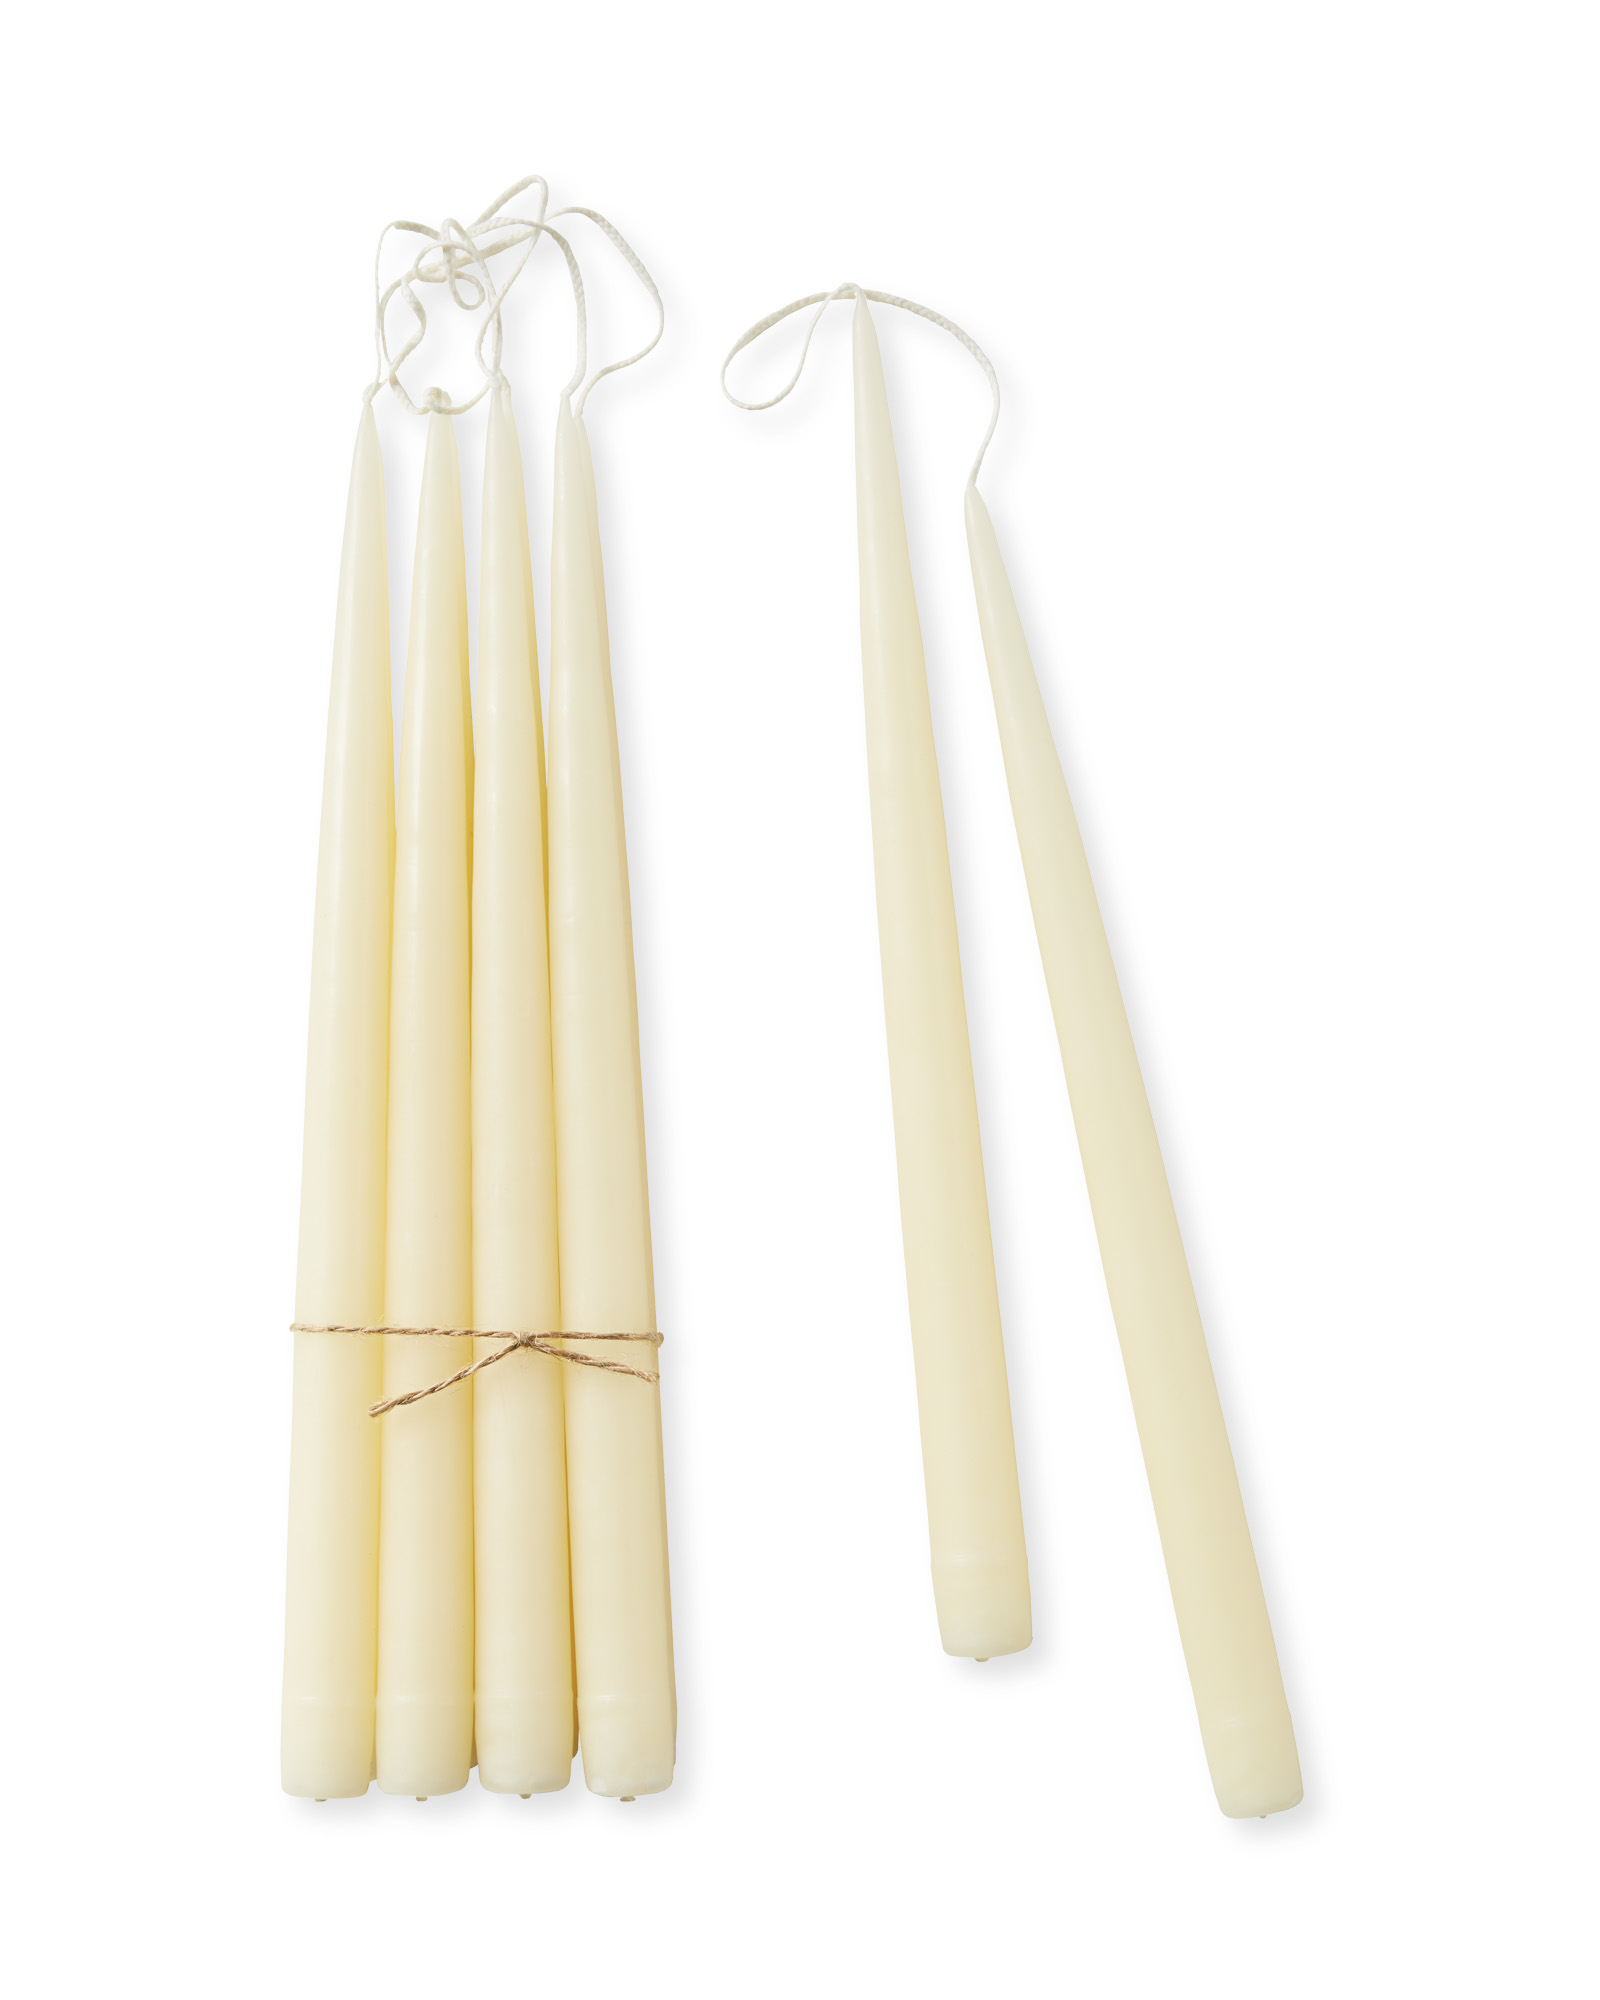 Tapered Candles (Set of 10), Ivory